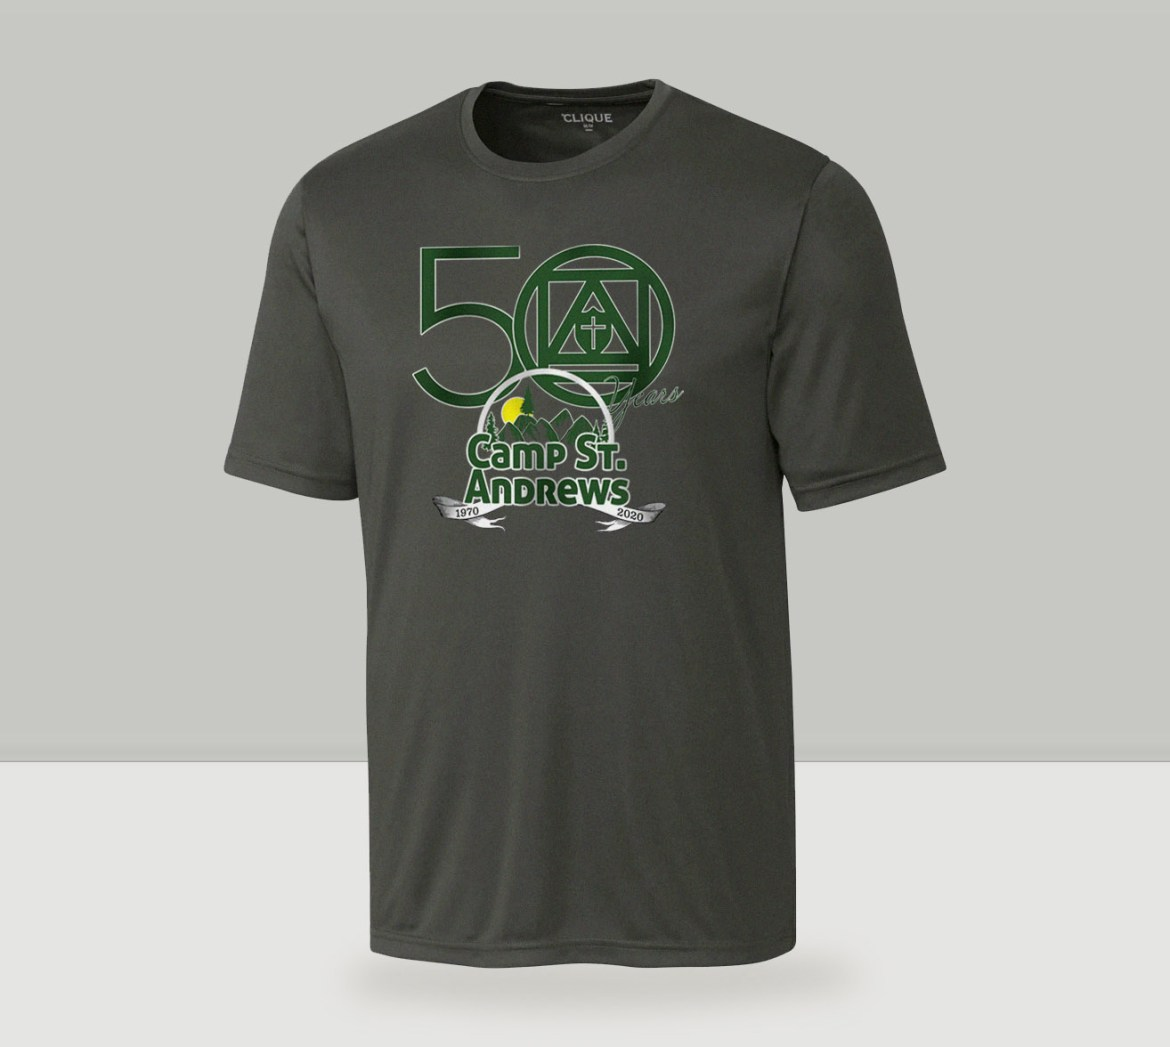 Camp St. Andrews 50th Anniversary T-shirt